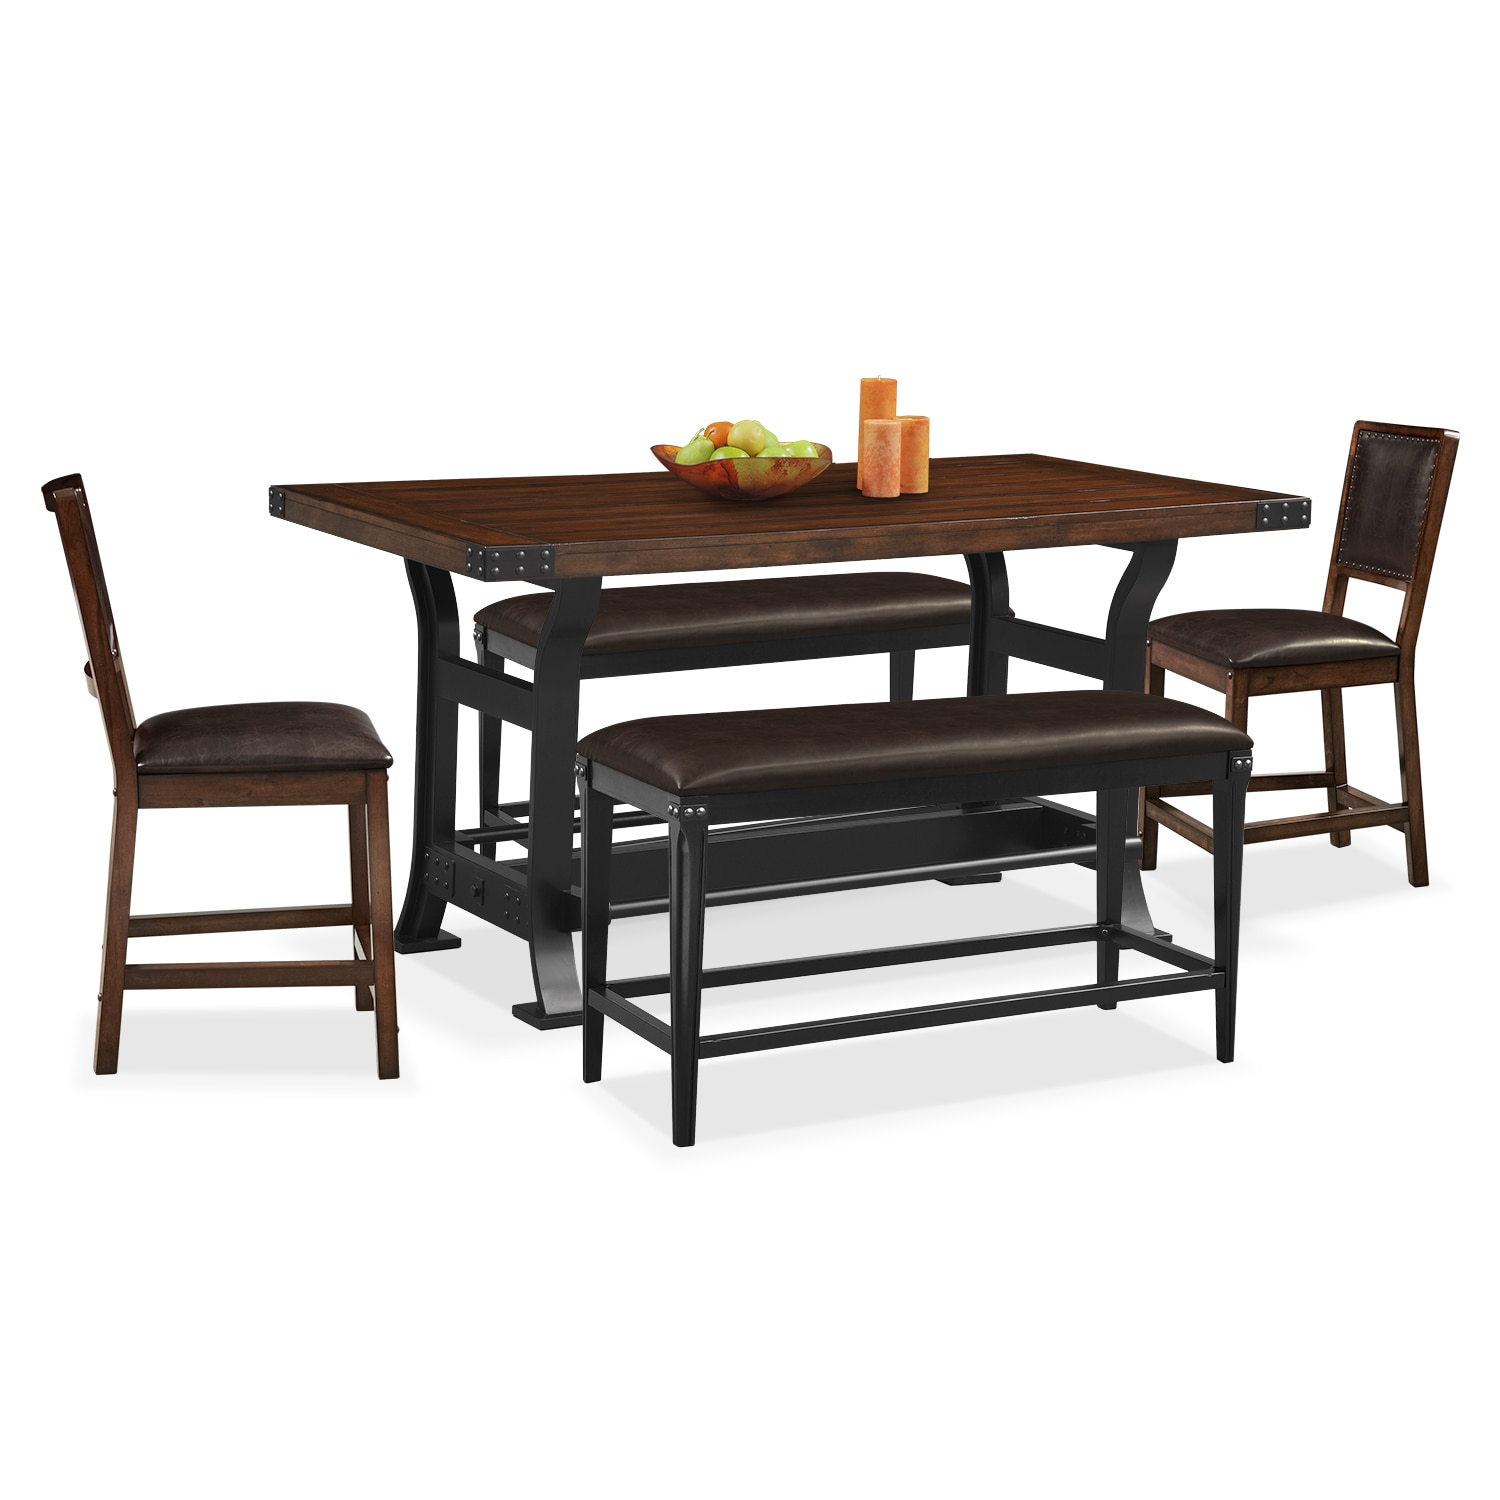 Dining Room Furniture - Newcastle Counter-Height Table, 2 Side Chairs and Benches